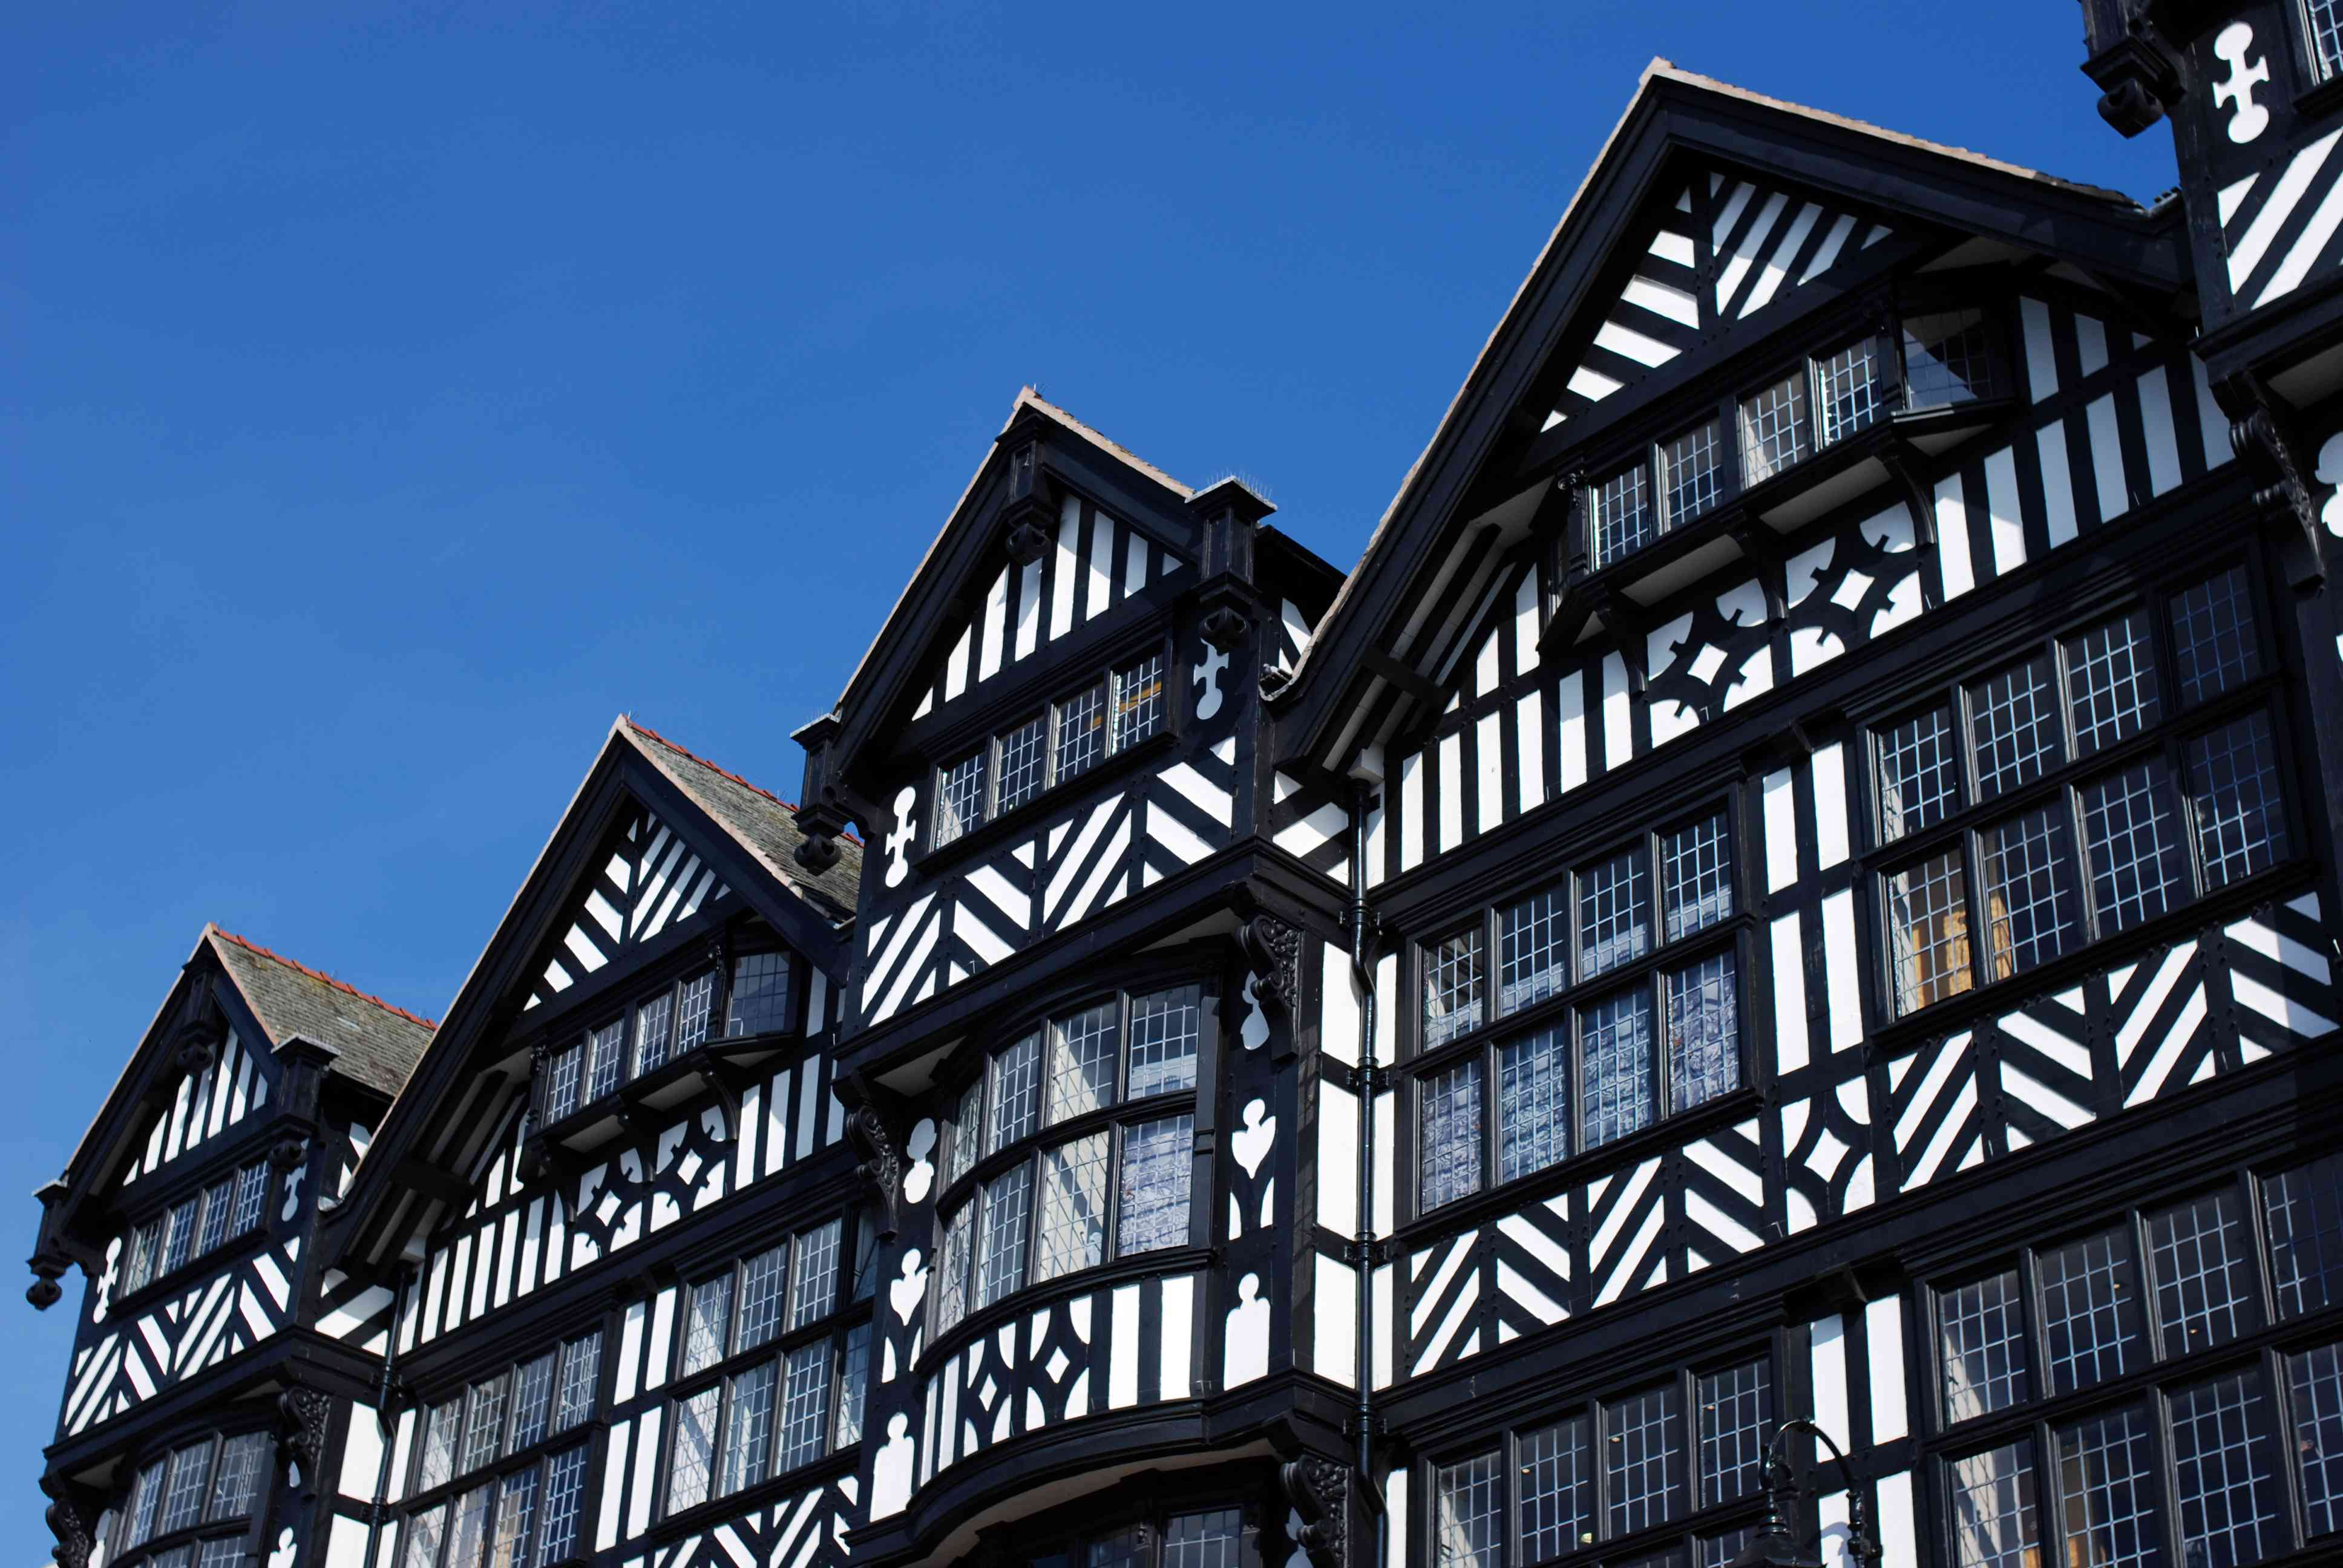 low angle view of the black and white Chester architecture